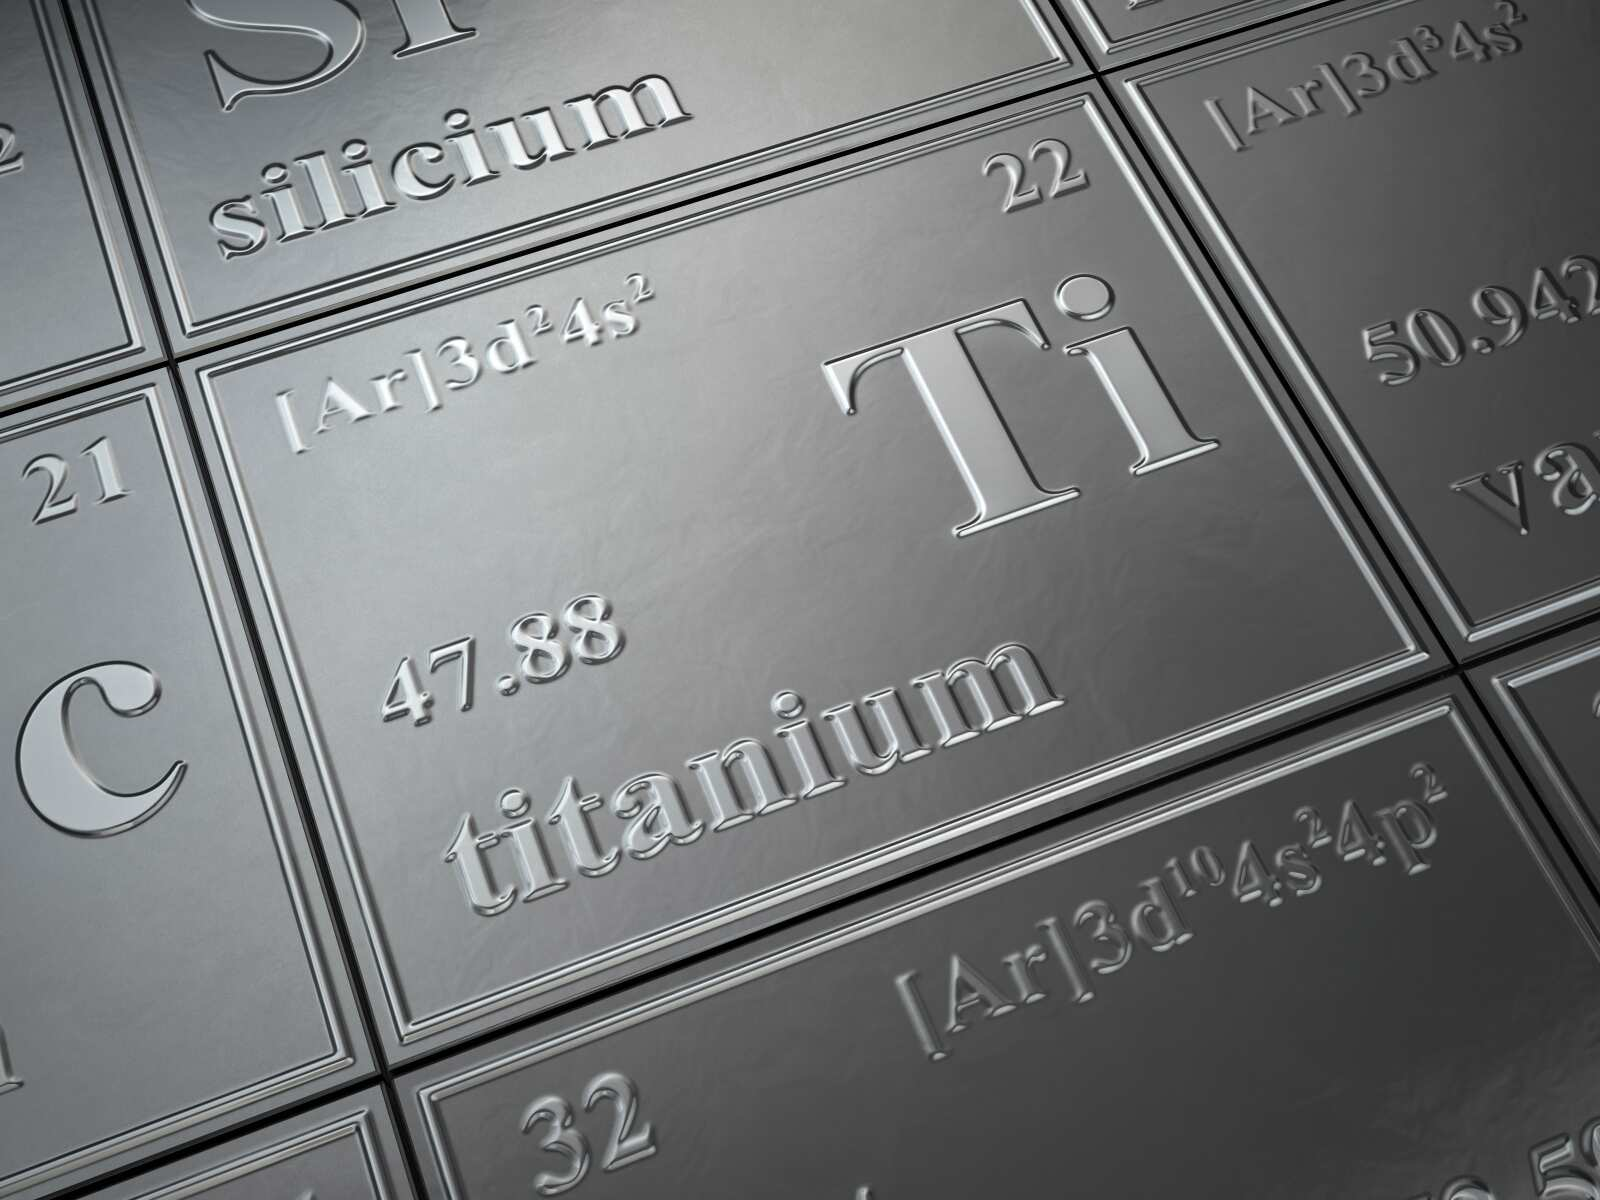 3d Metal Printing >> New Research on 3D Printing with Titanium - Analyzing Metals